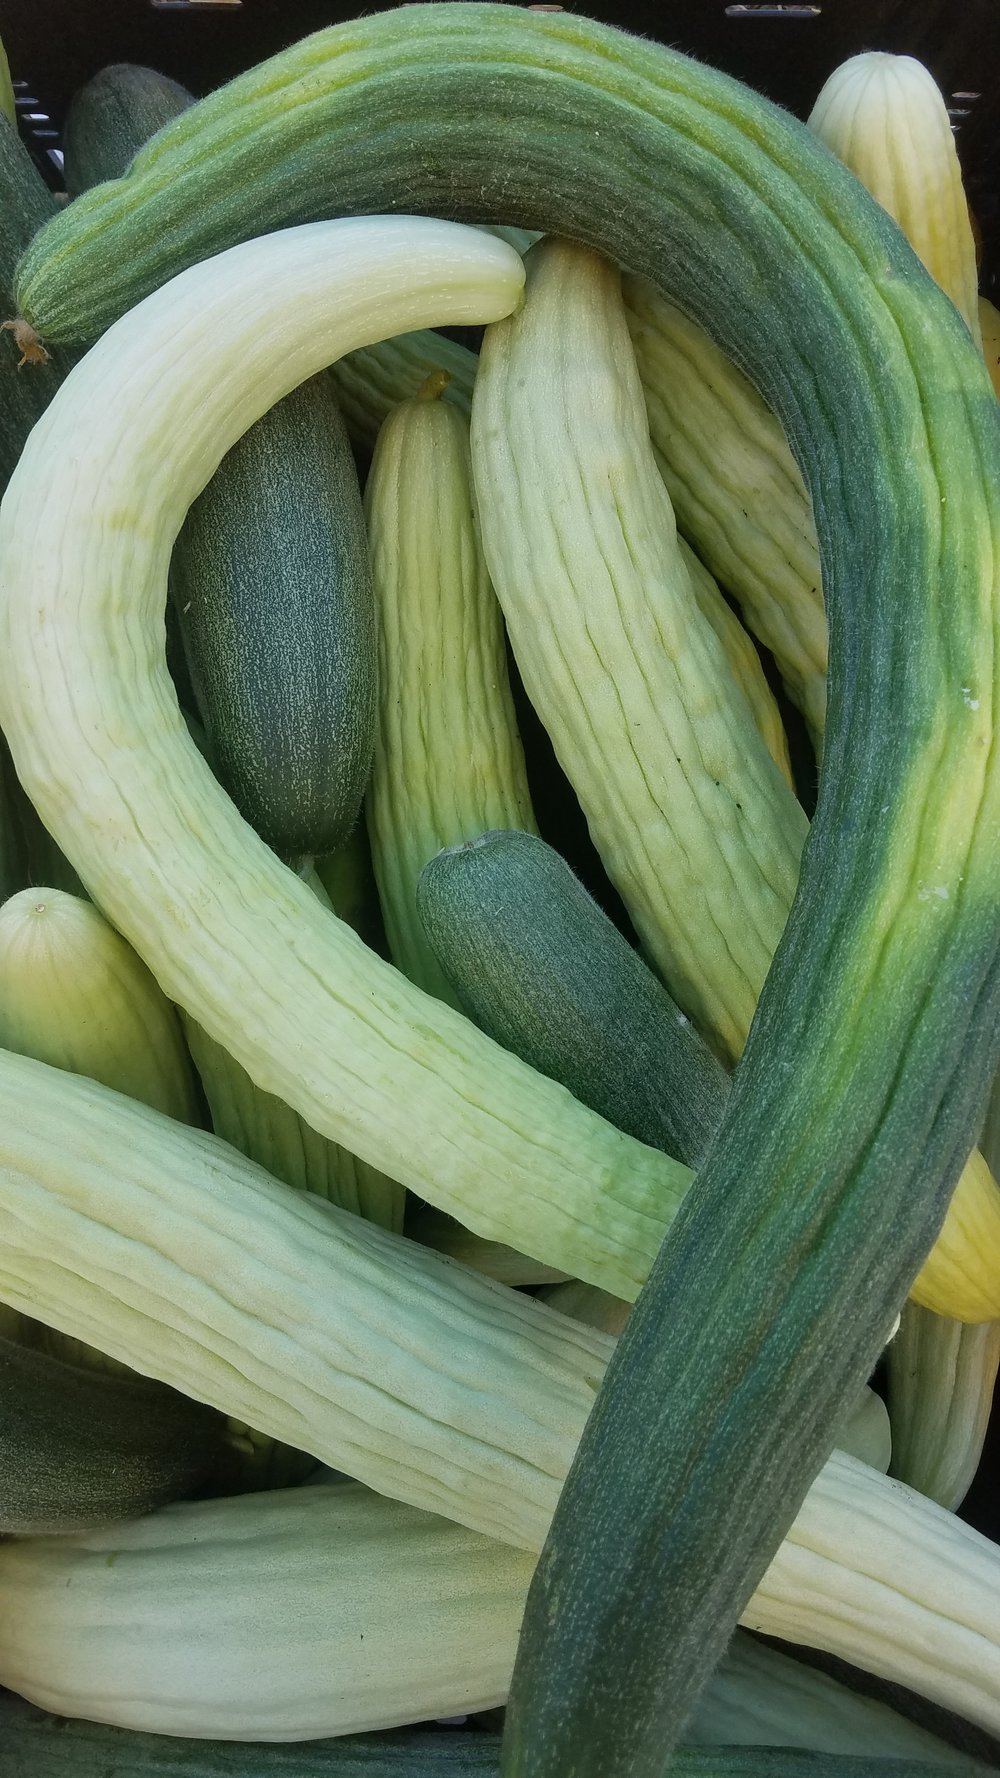 Armenian Cucumber - Also known as Serpent Melon, they have a fantastic crunch that lends itself nicely to salads and pickles. Also terrific in chilled soups or smoothies.